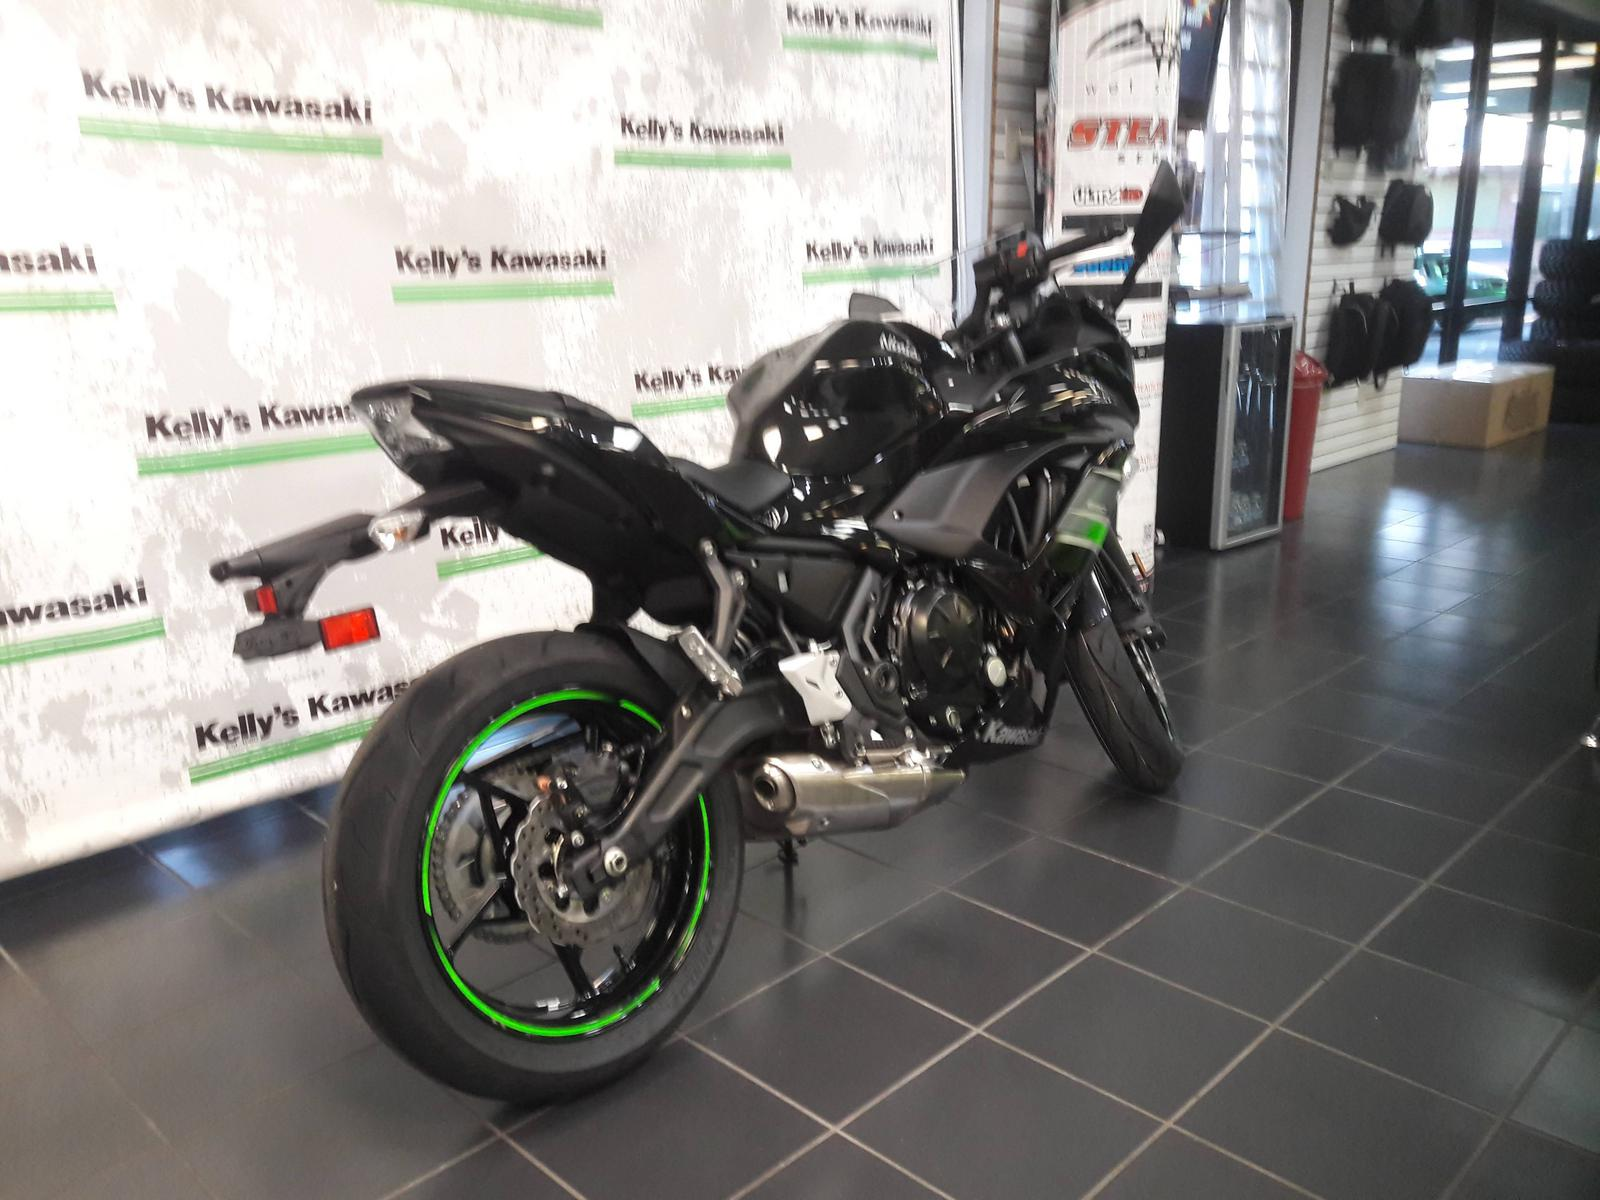 2019 Kawasaki Ninja 650 Abs For Sale In Mesa Az Kellys Kawasaki